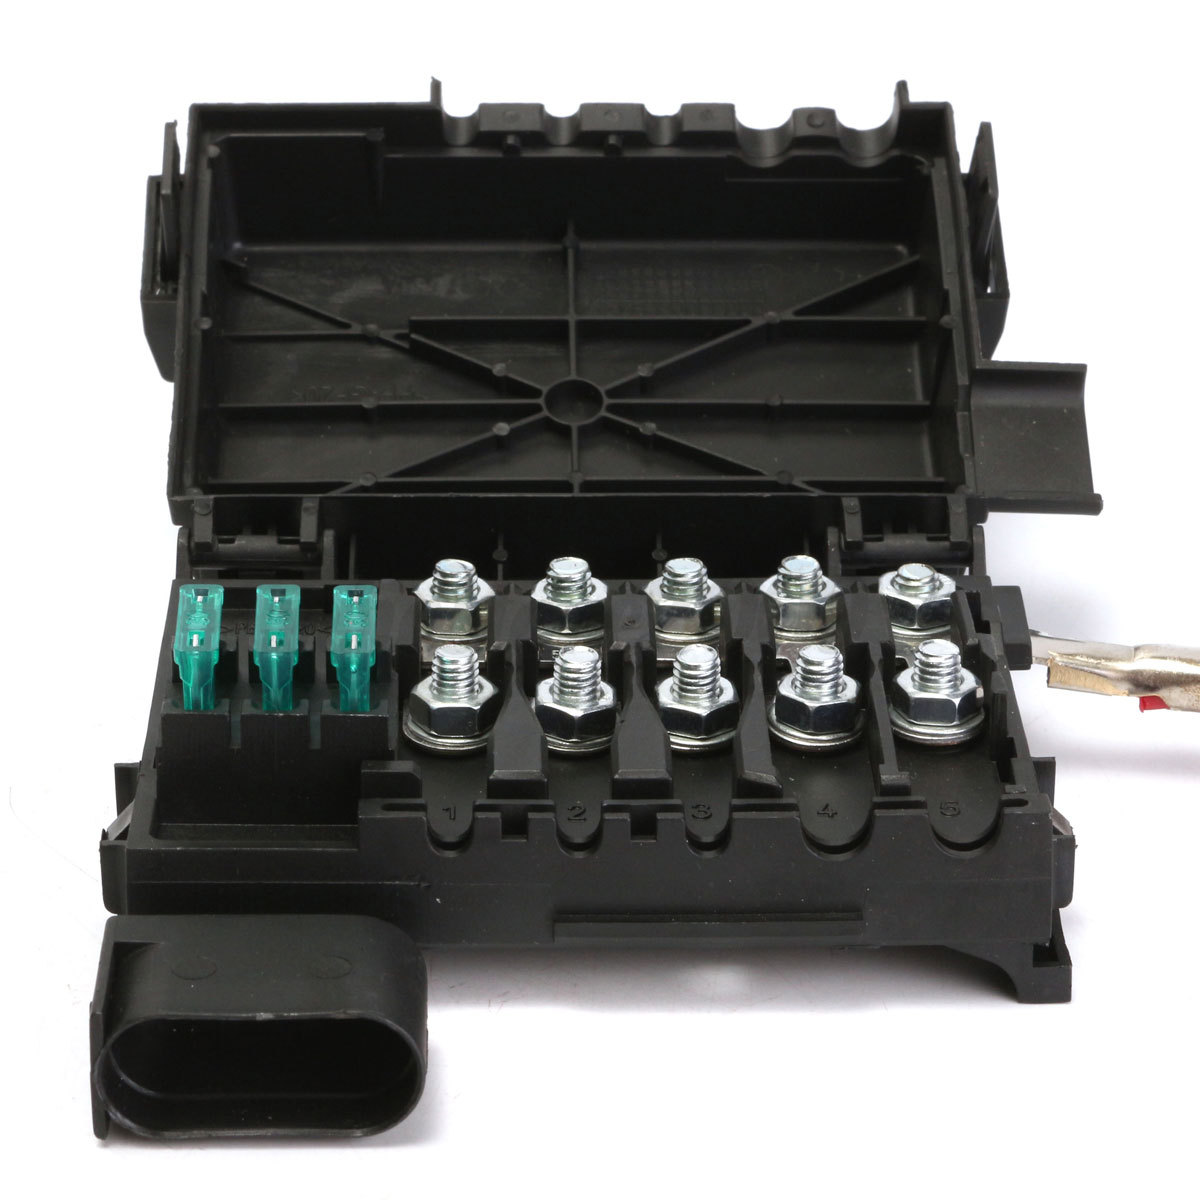 hight resolution of for vw jetta golf mk4 1999 2004 beetle fuse box battery 2004 vw golf fuse box